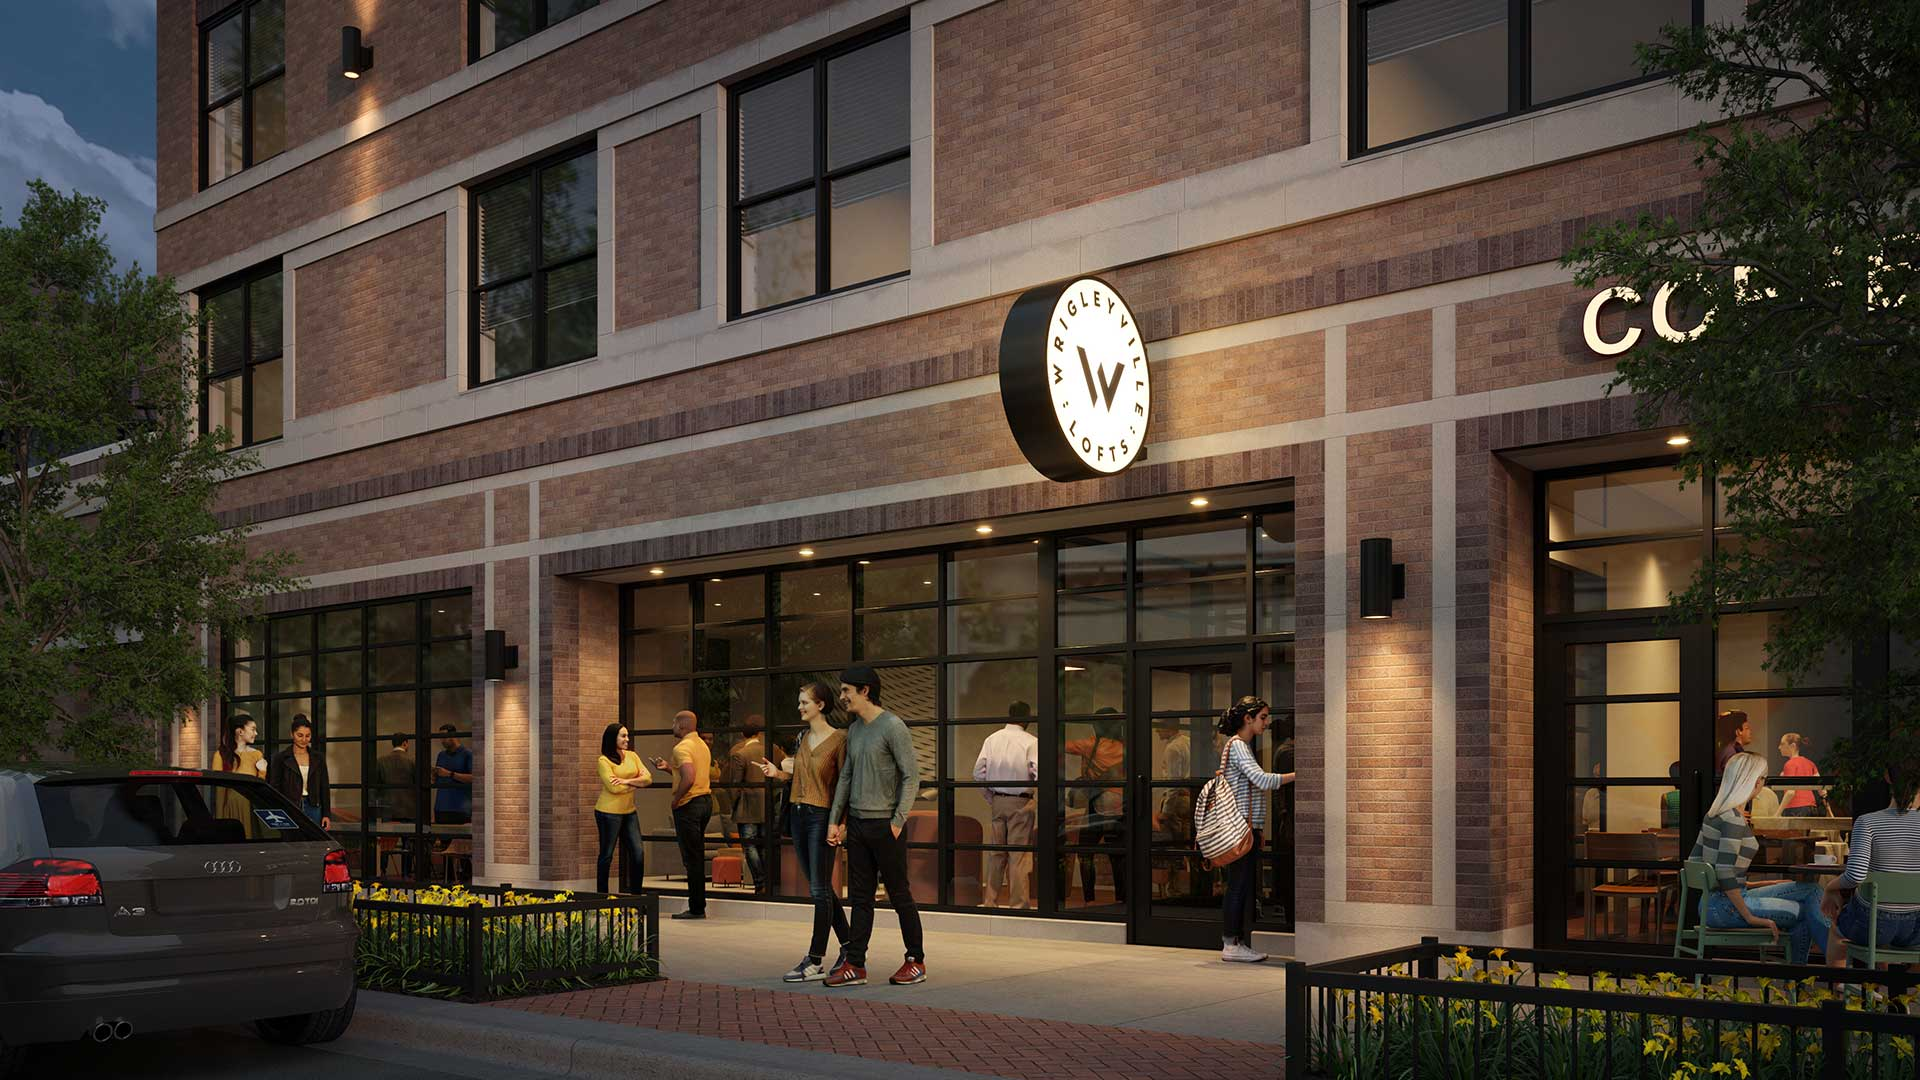 A rendering looking at the future entryway to Wrigleyville Lofts. It is early evening and people are coming in and out of the building.